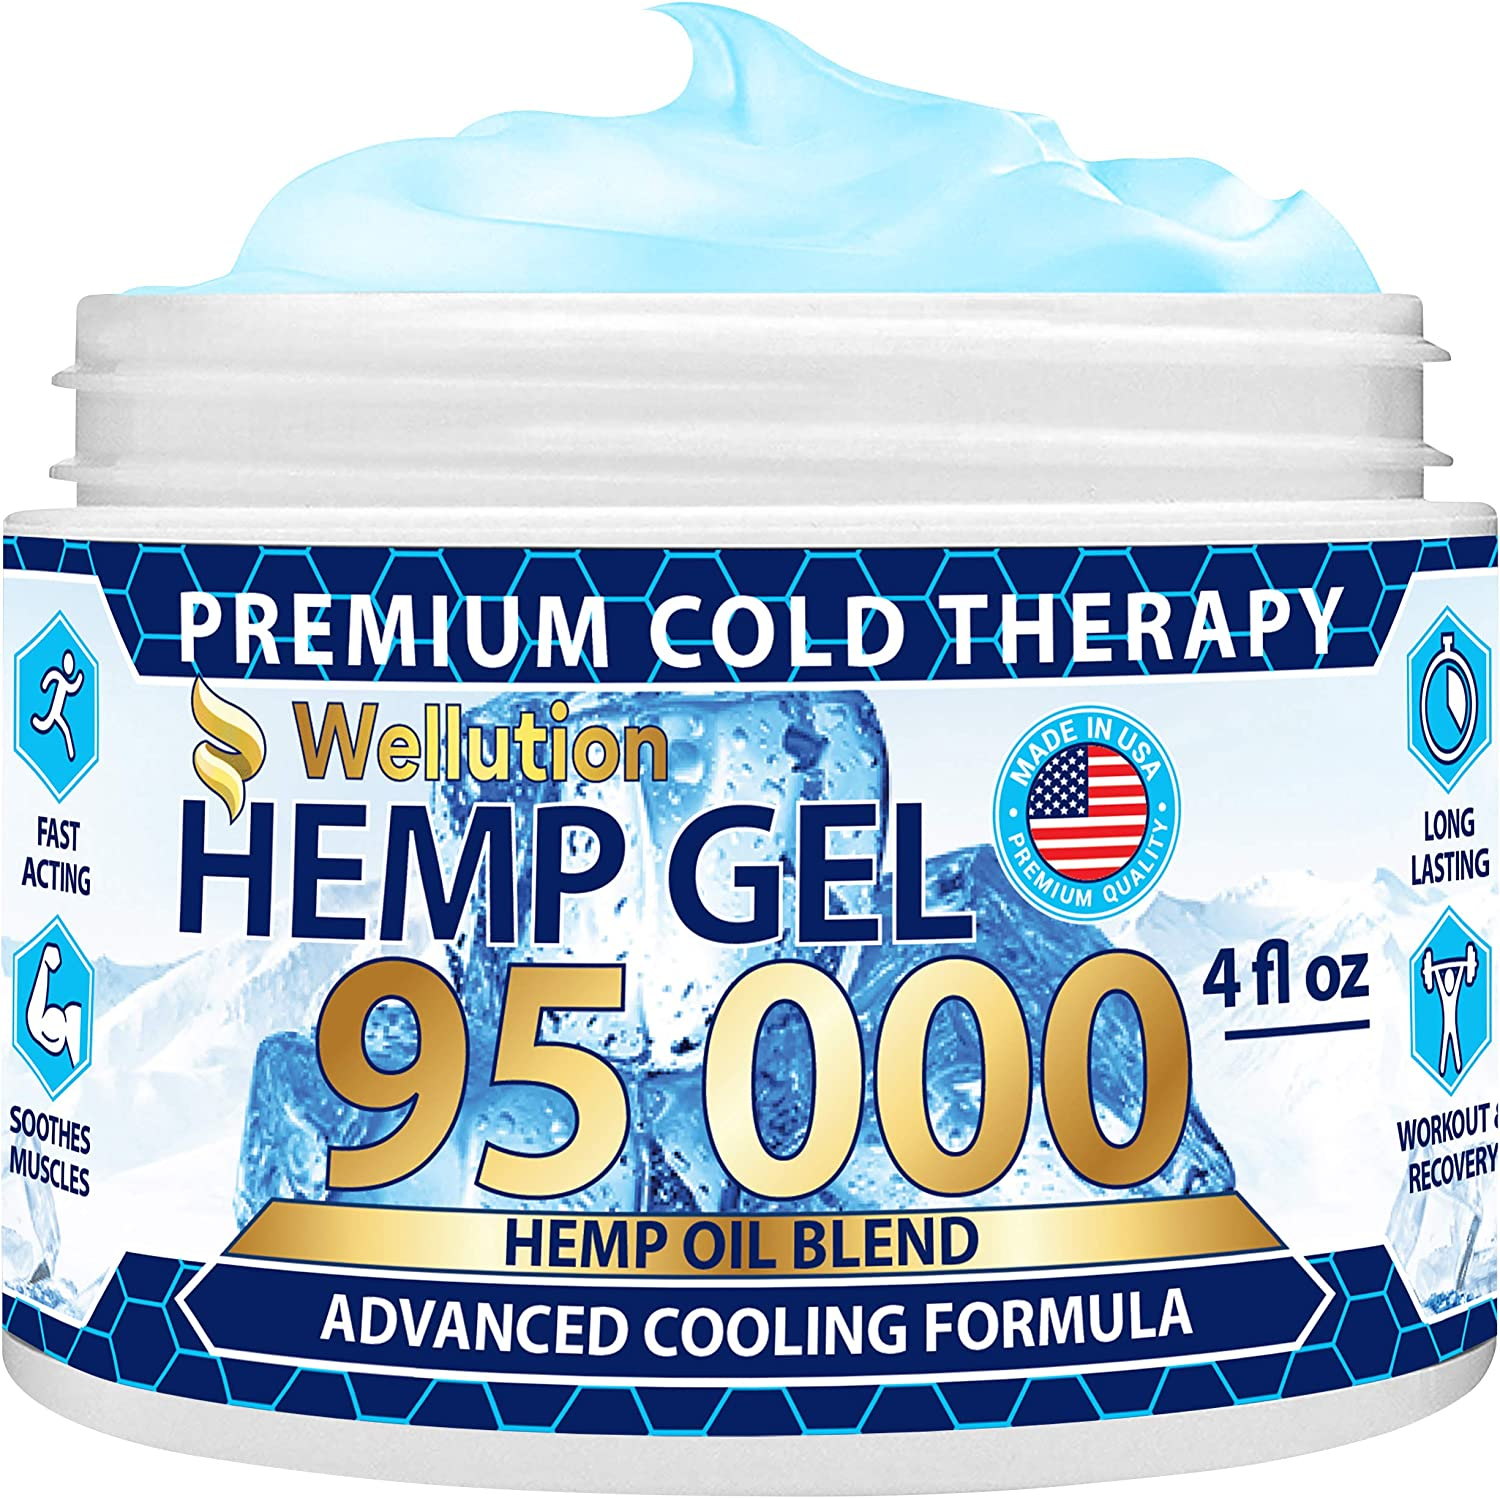 Hemp Gel 95,000 - Maximum Strength Formula for Muscle, Back, Nerve, Knee, Joint Pain Relief - All-Natural Blend of Arnica, Coconut Oil, Chamomile, Menthol, Vitamin E - Cooling, Soothing, Relaxing